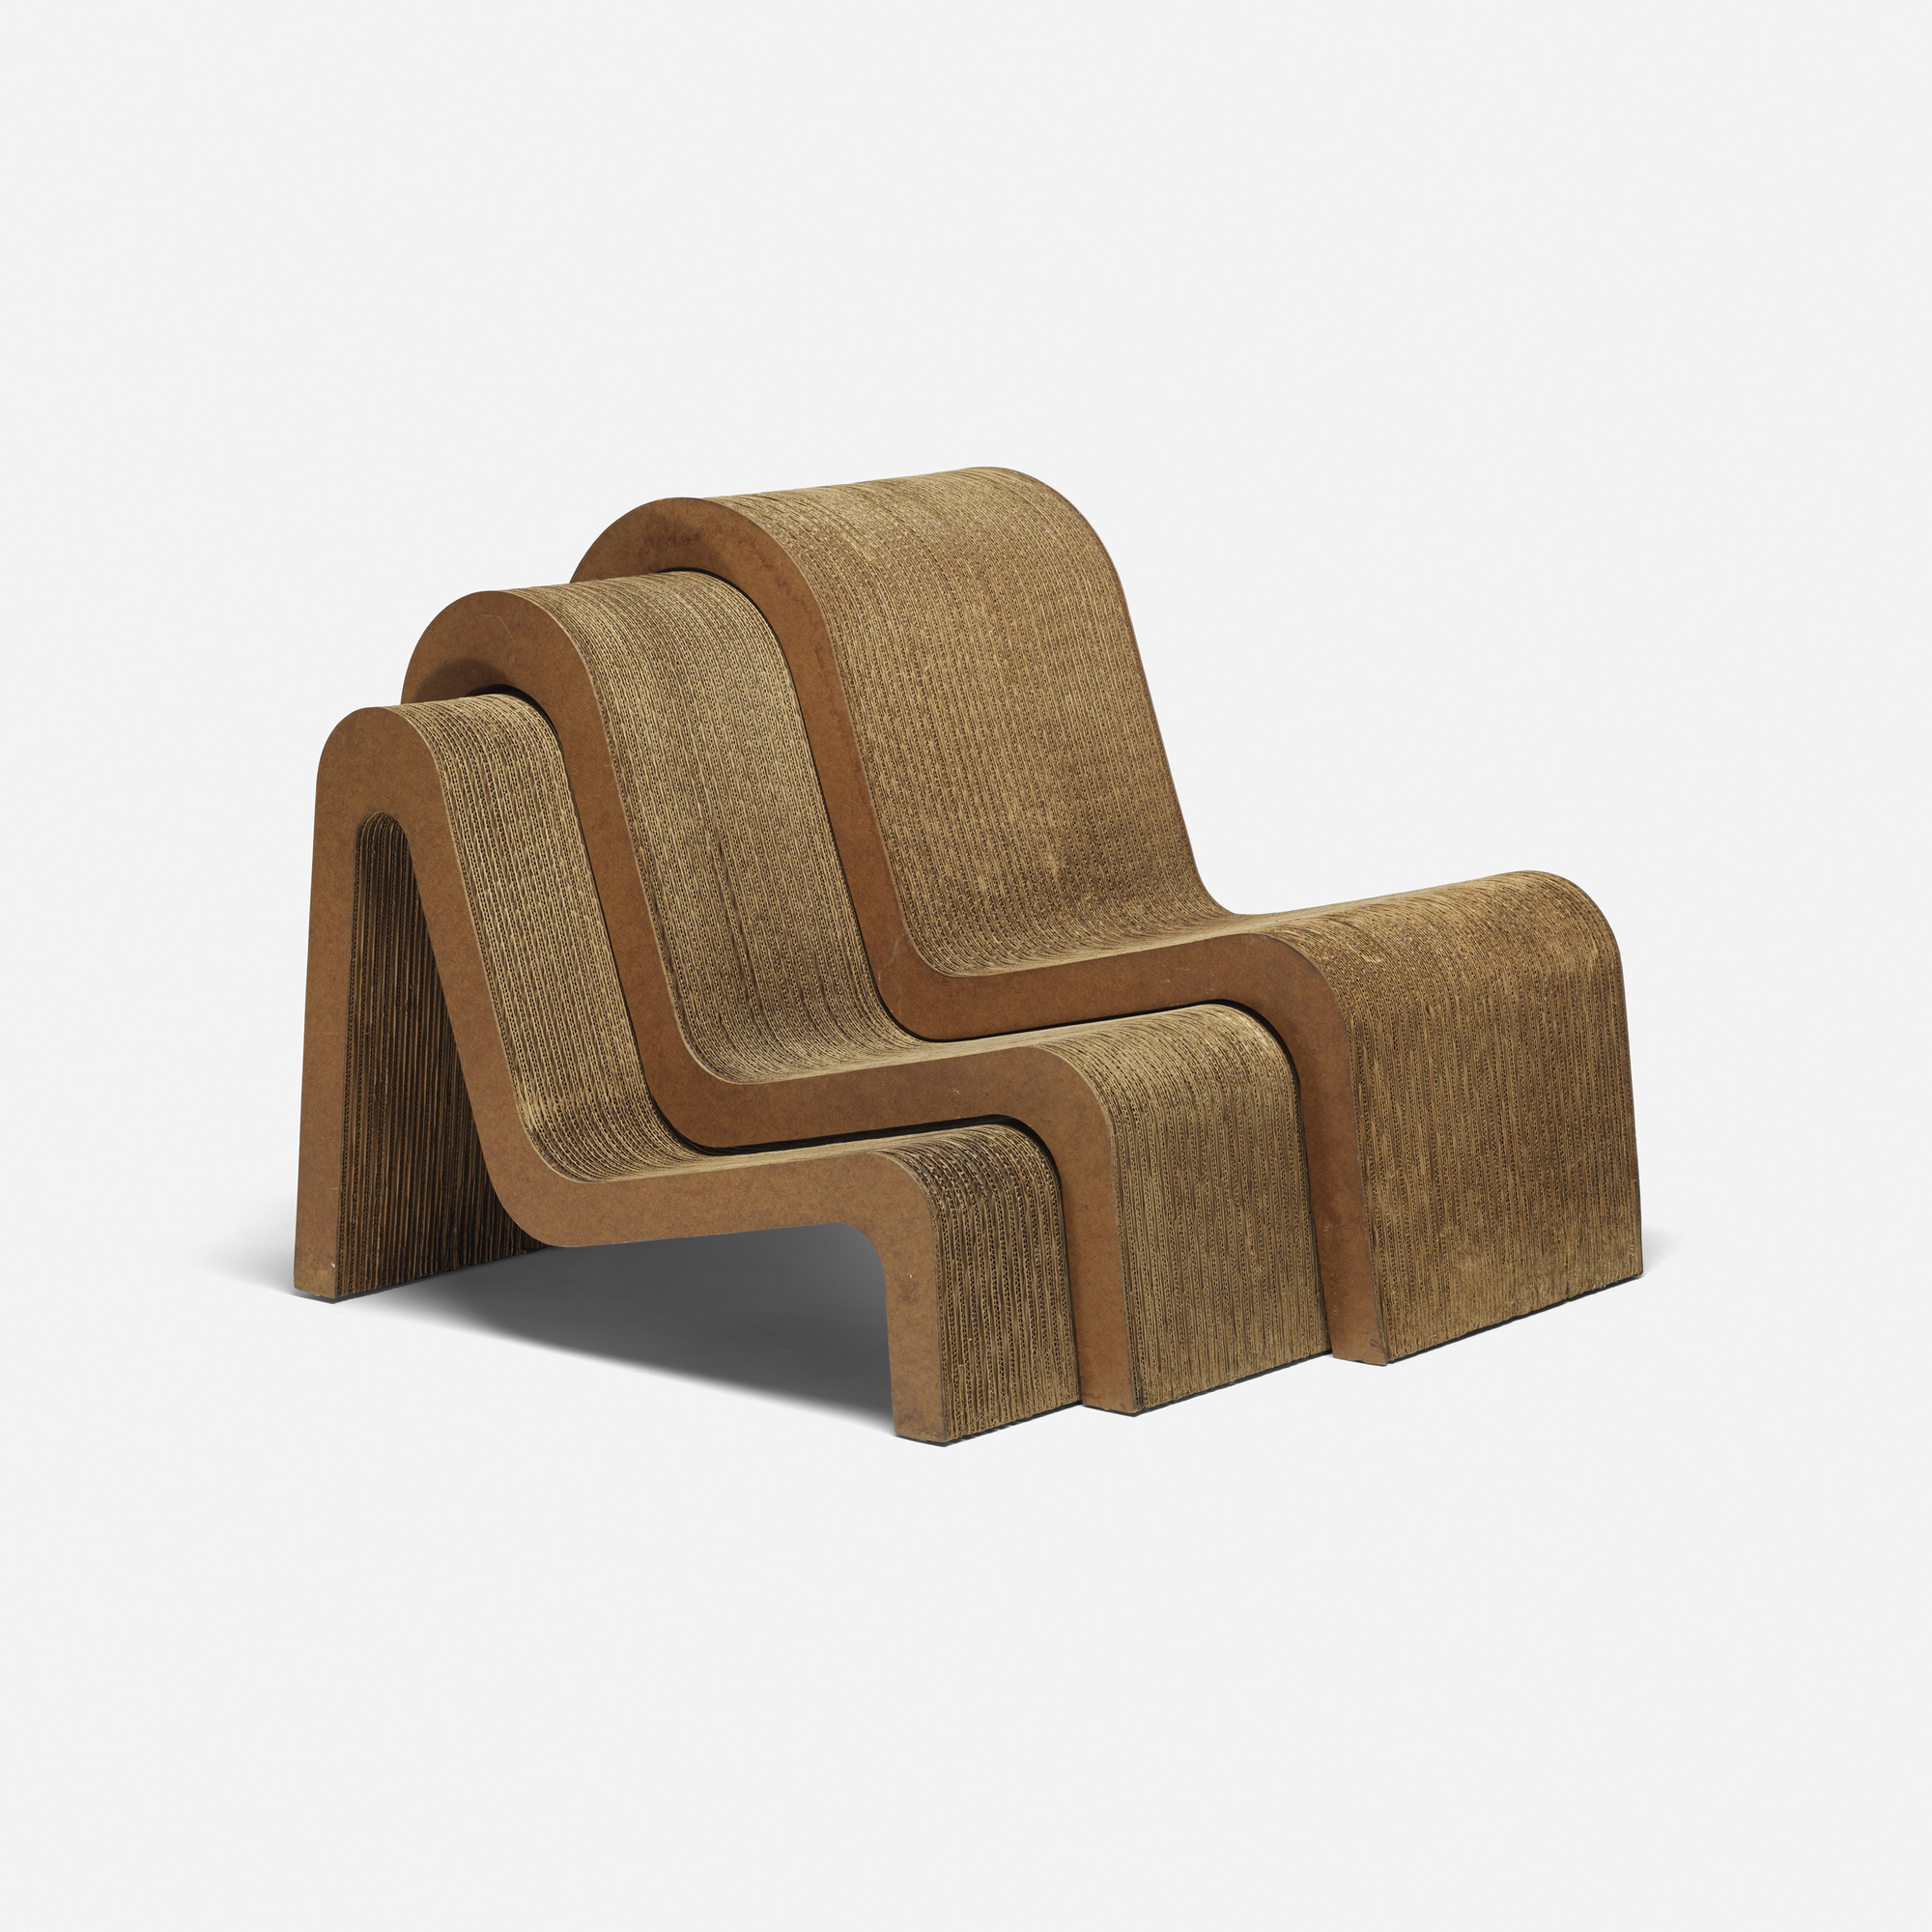 Etonnant 426: Frank Gehry / Nesting Chairs, Set Of Three (1 Of 1)